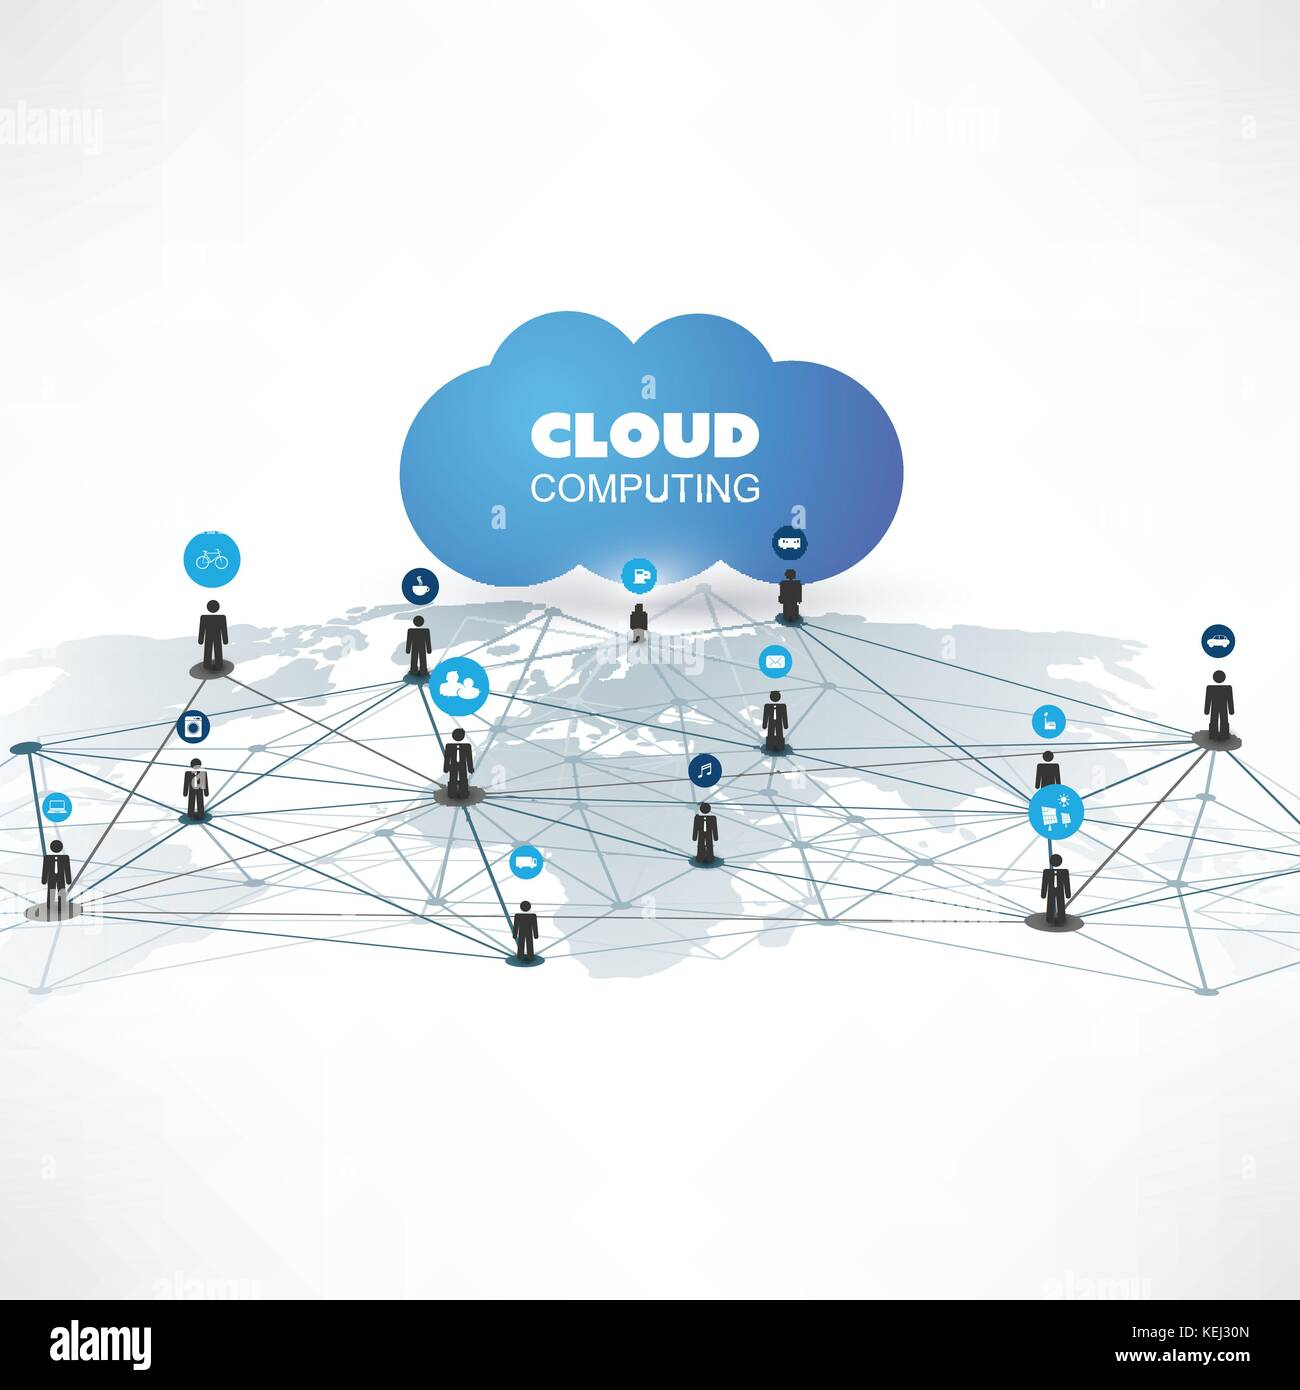 cloud computing and networks design concept with icons digital